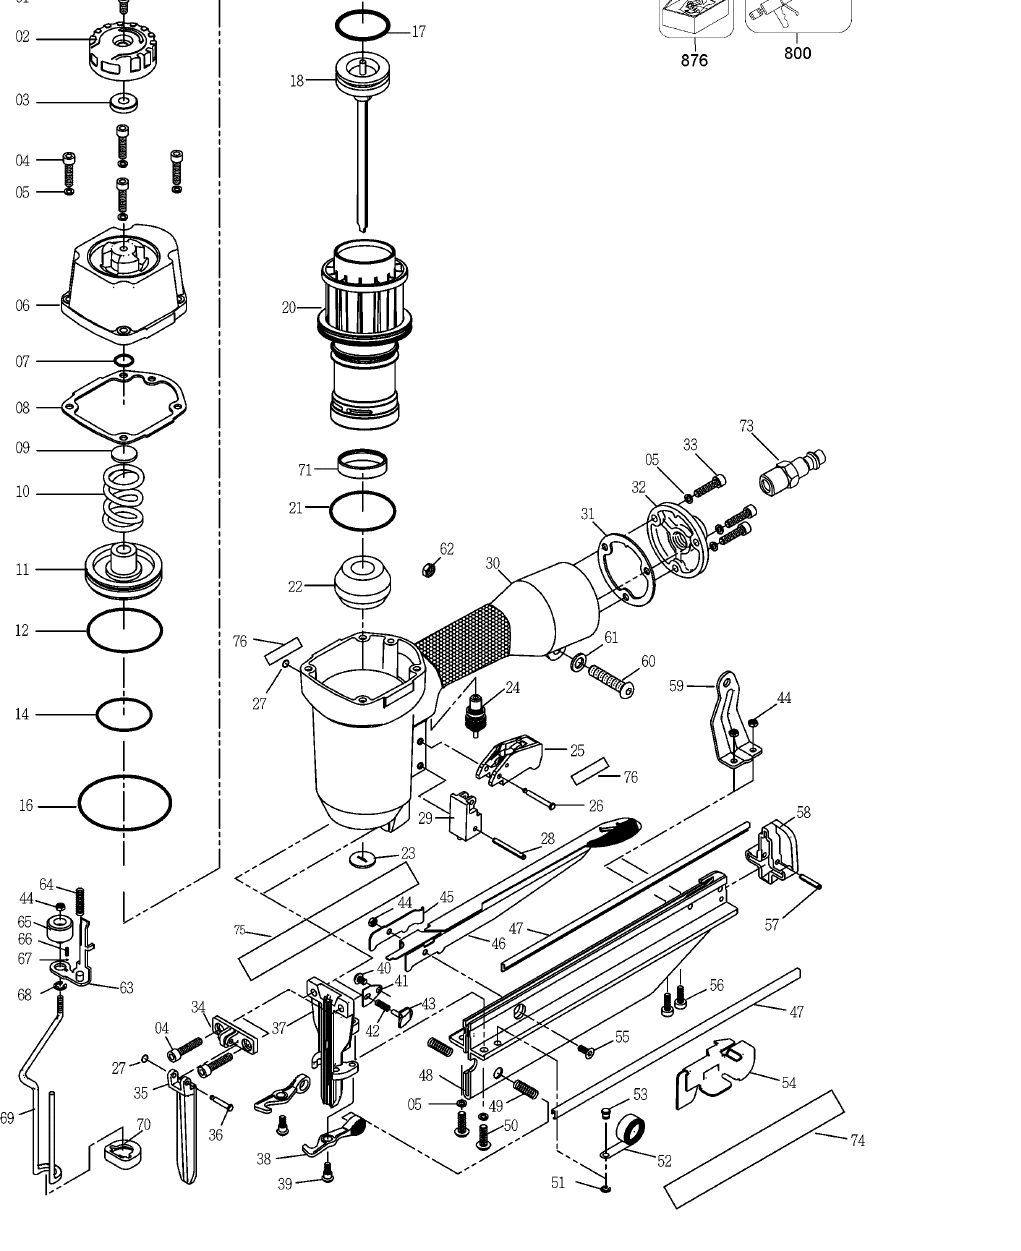 Pneumatic Counter Schematic Part : Porter cable nailer fn sb type